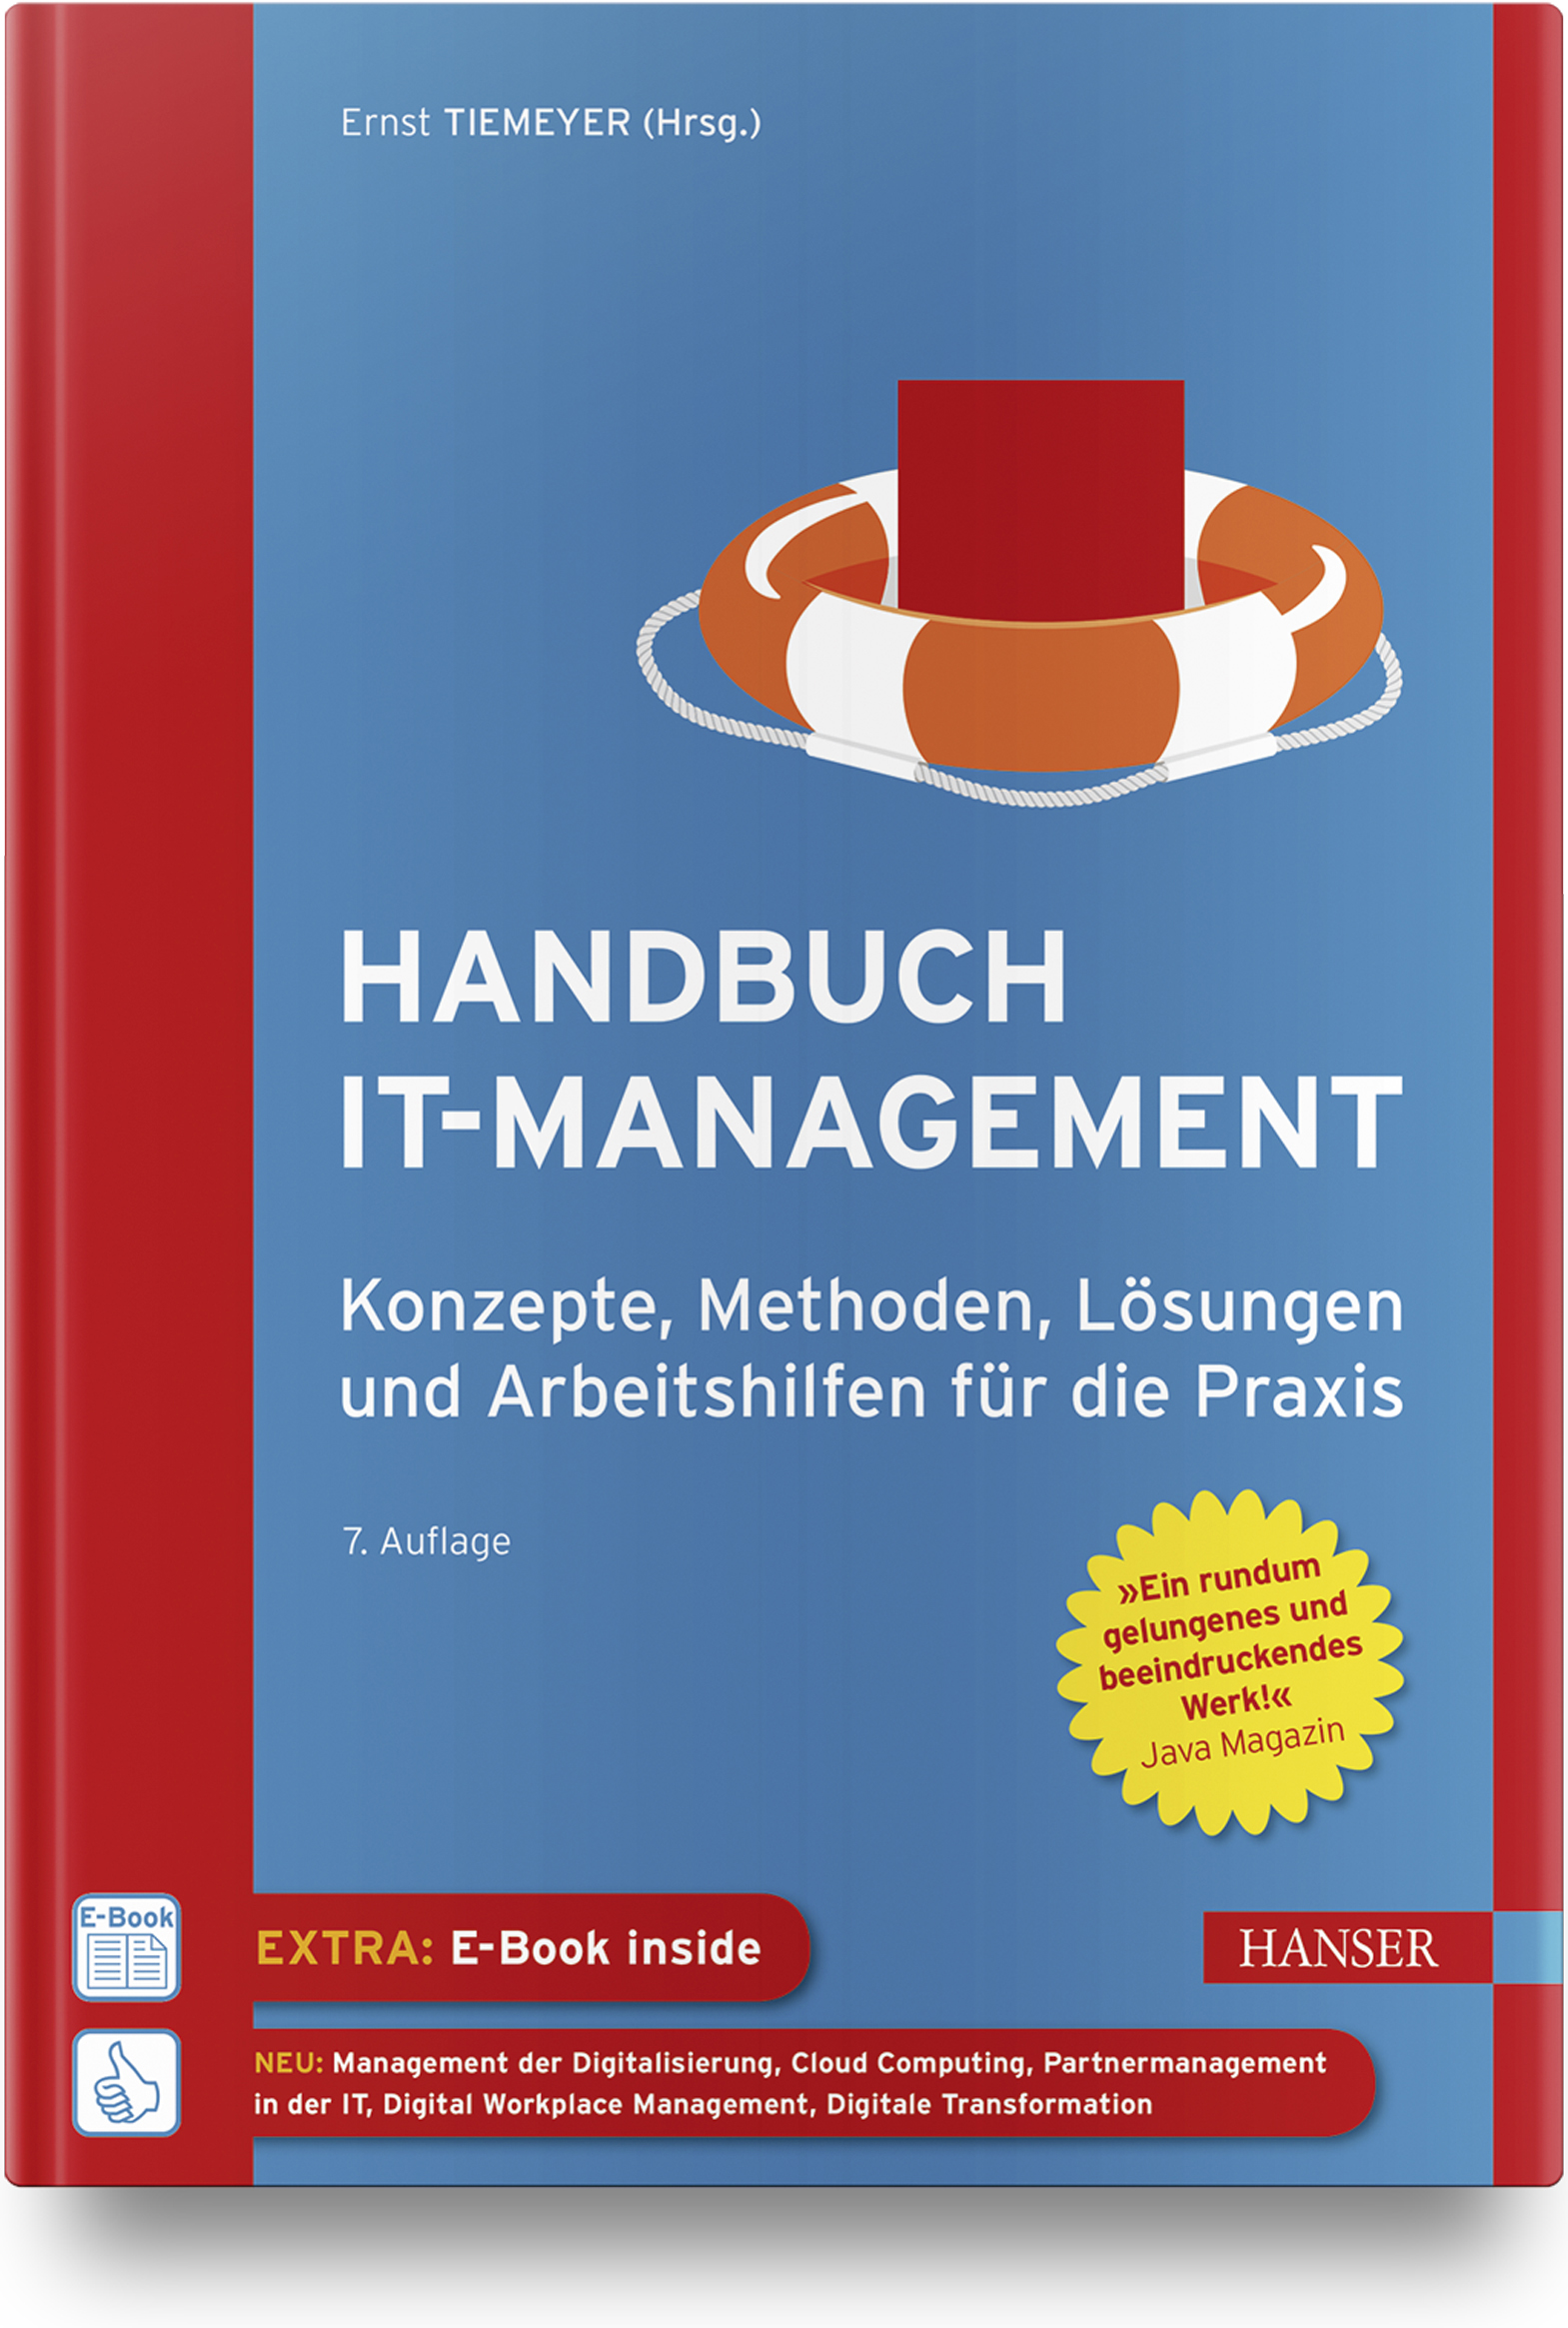 Handbuch IT-Management, 978-3-446-46184-0